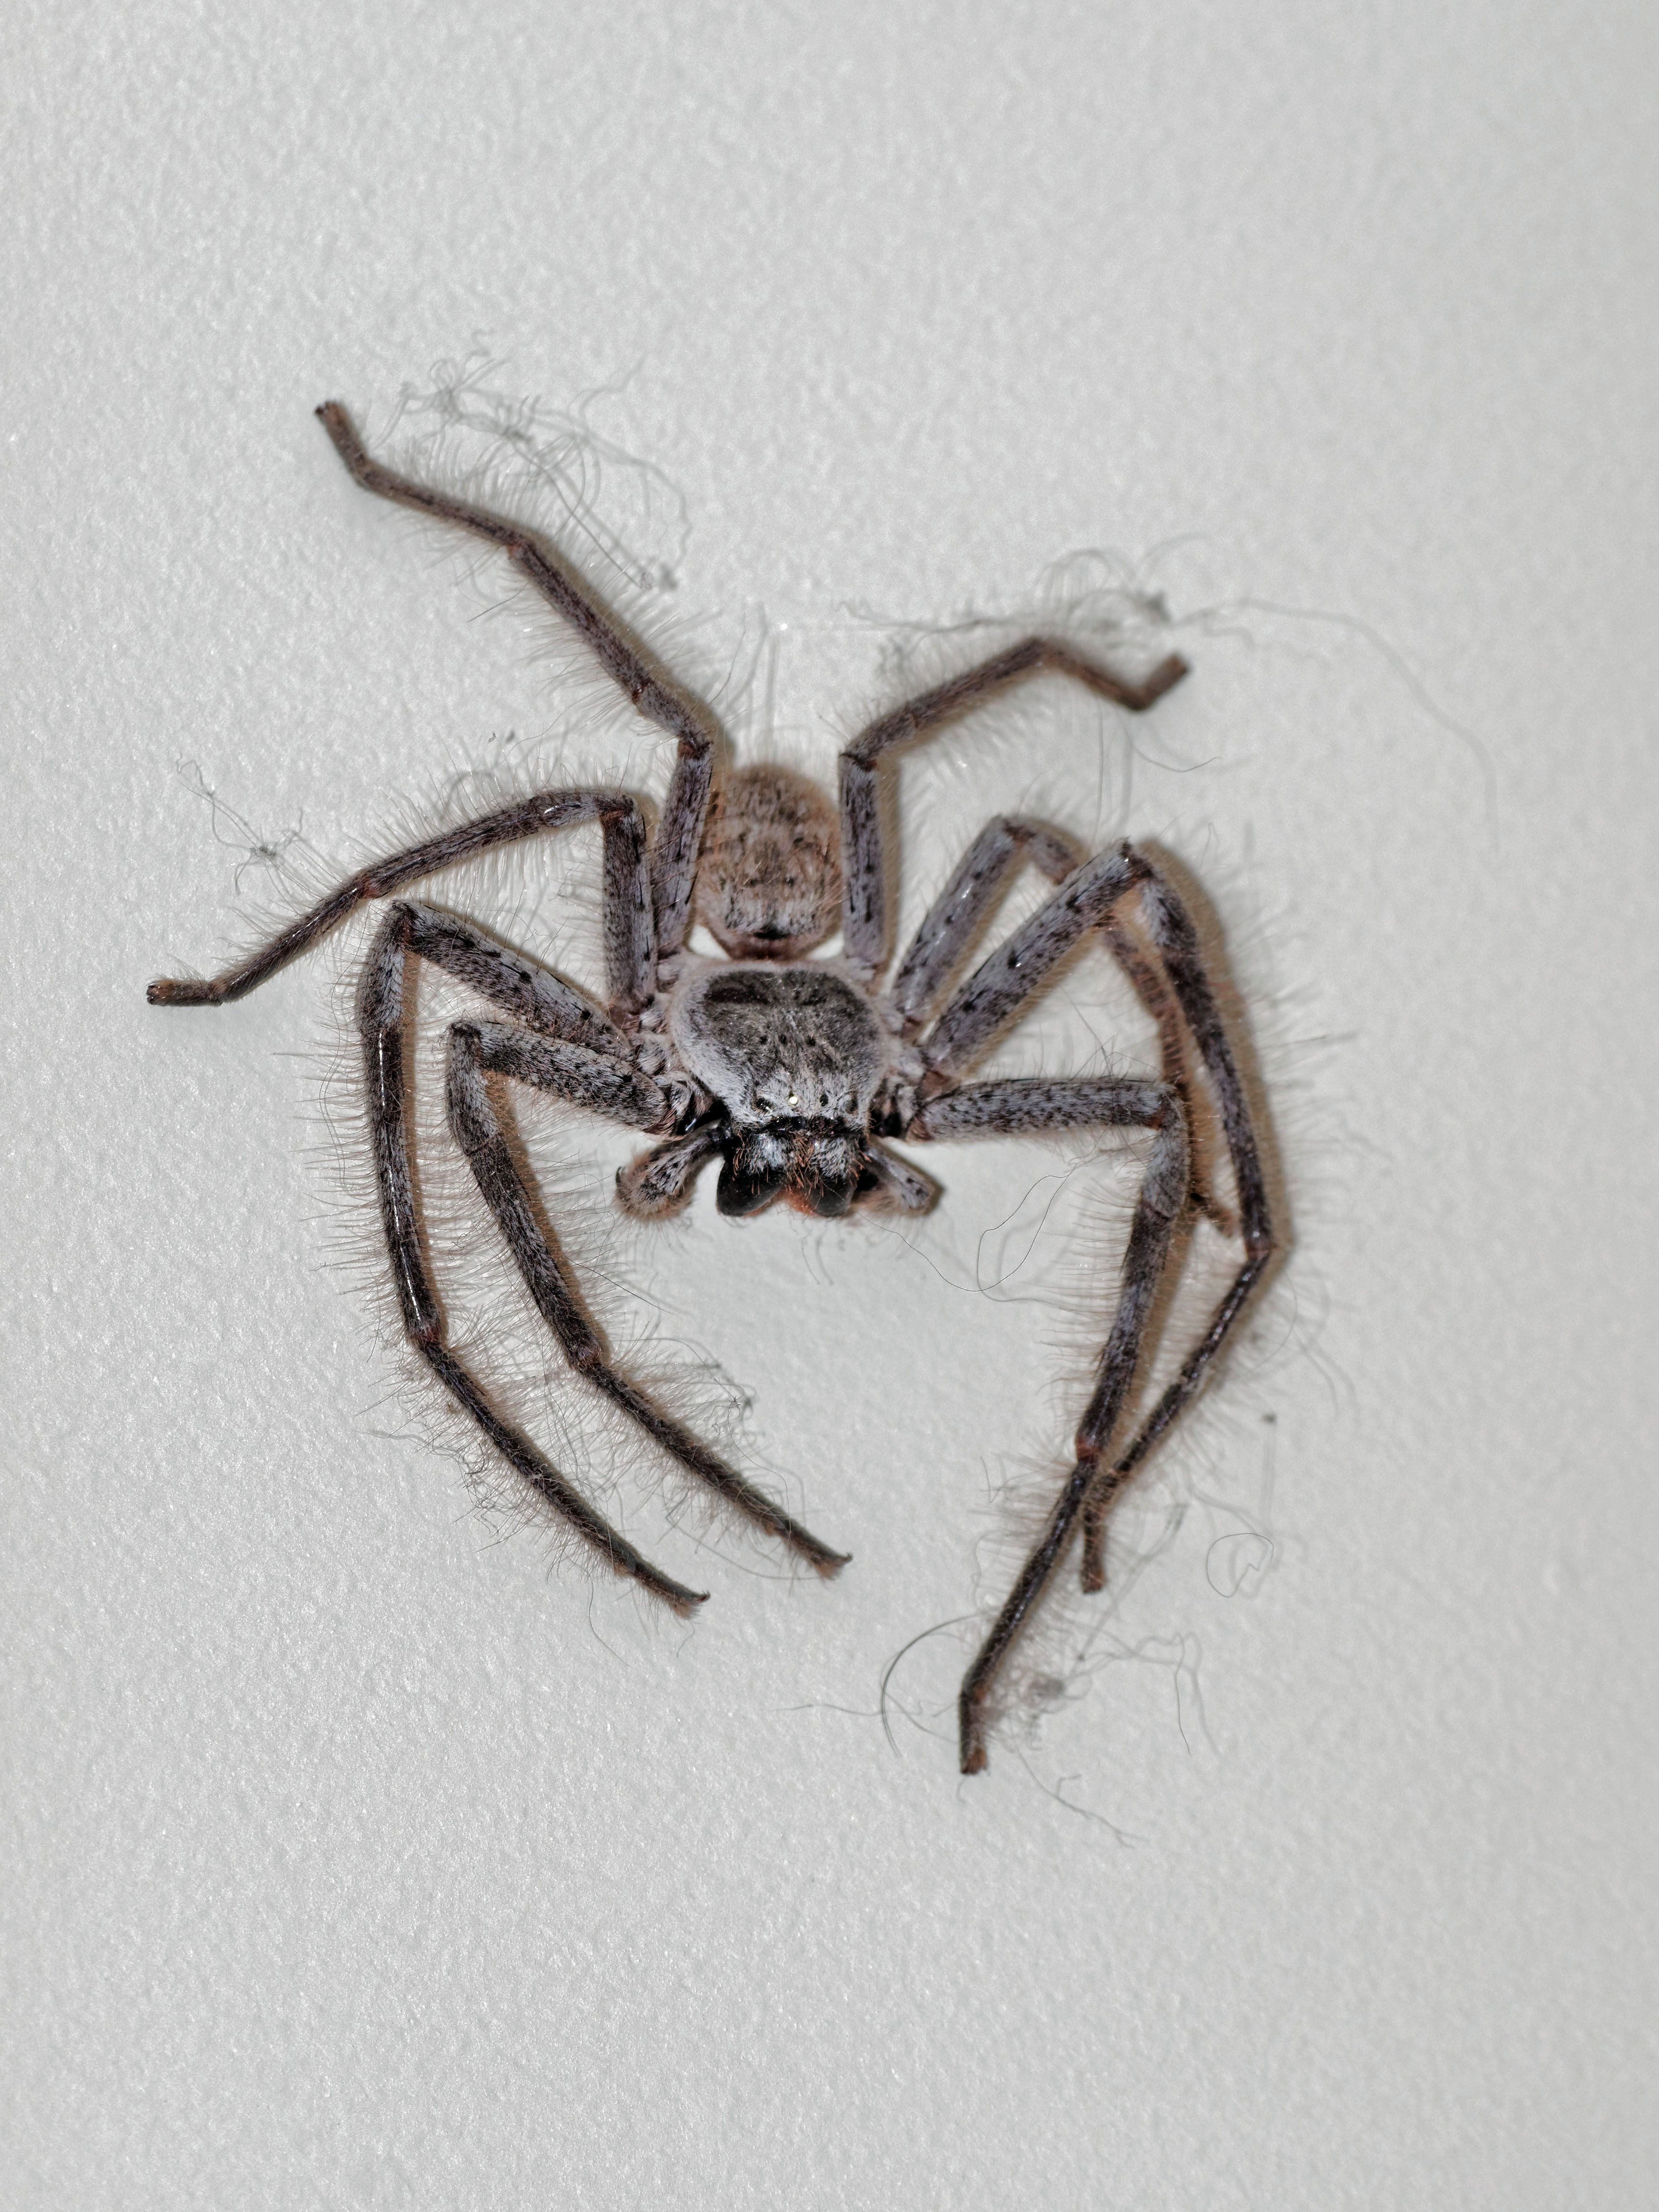 This should be Huntsman-spider-2.jpeg.  Is it missing?